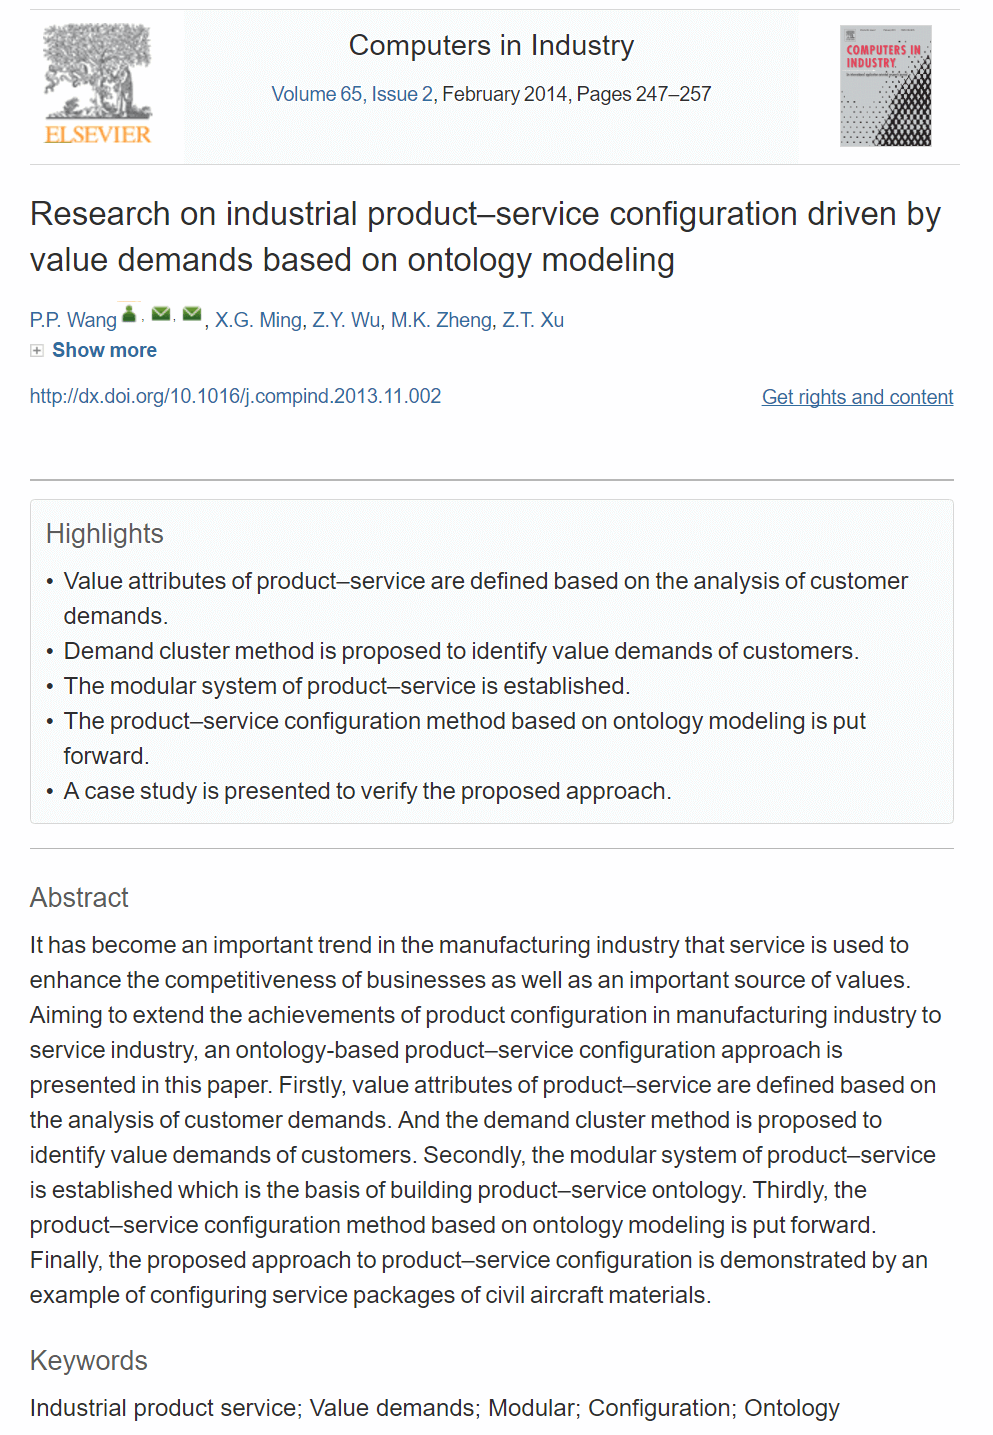 Research on Industrial Product-Service Configuration Driven by Value Demands Based on Ontology Modeling